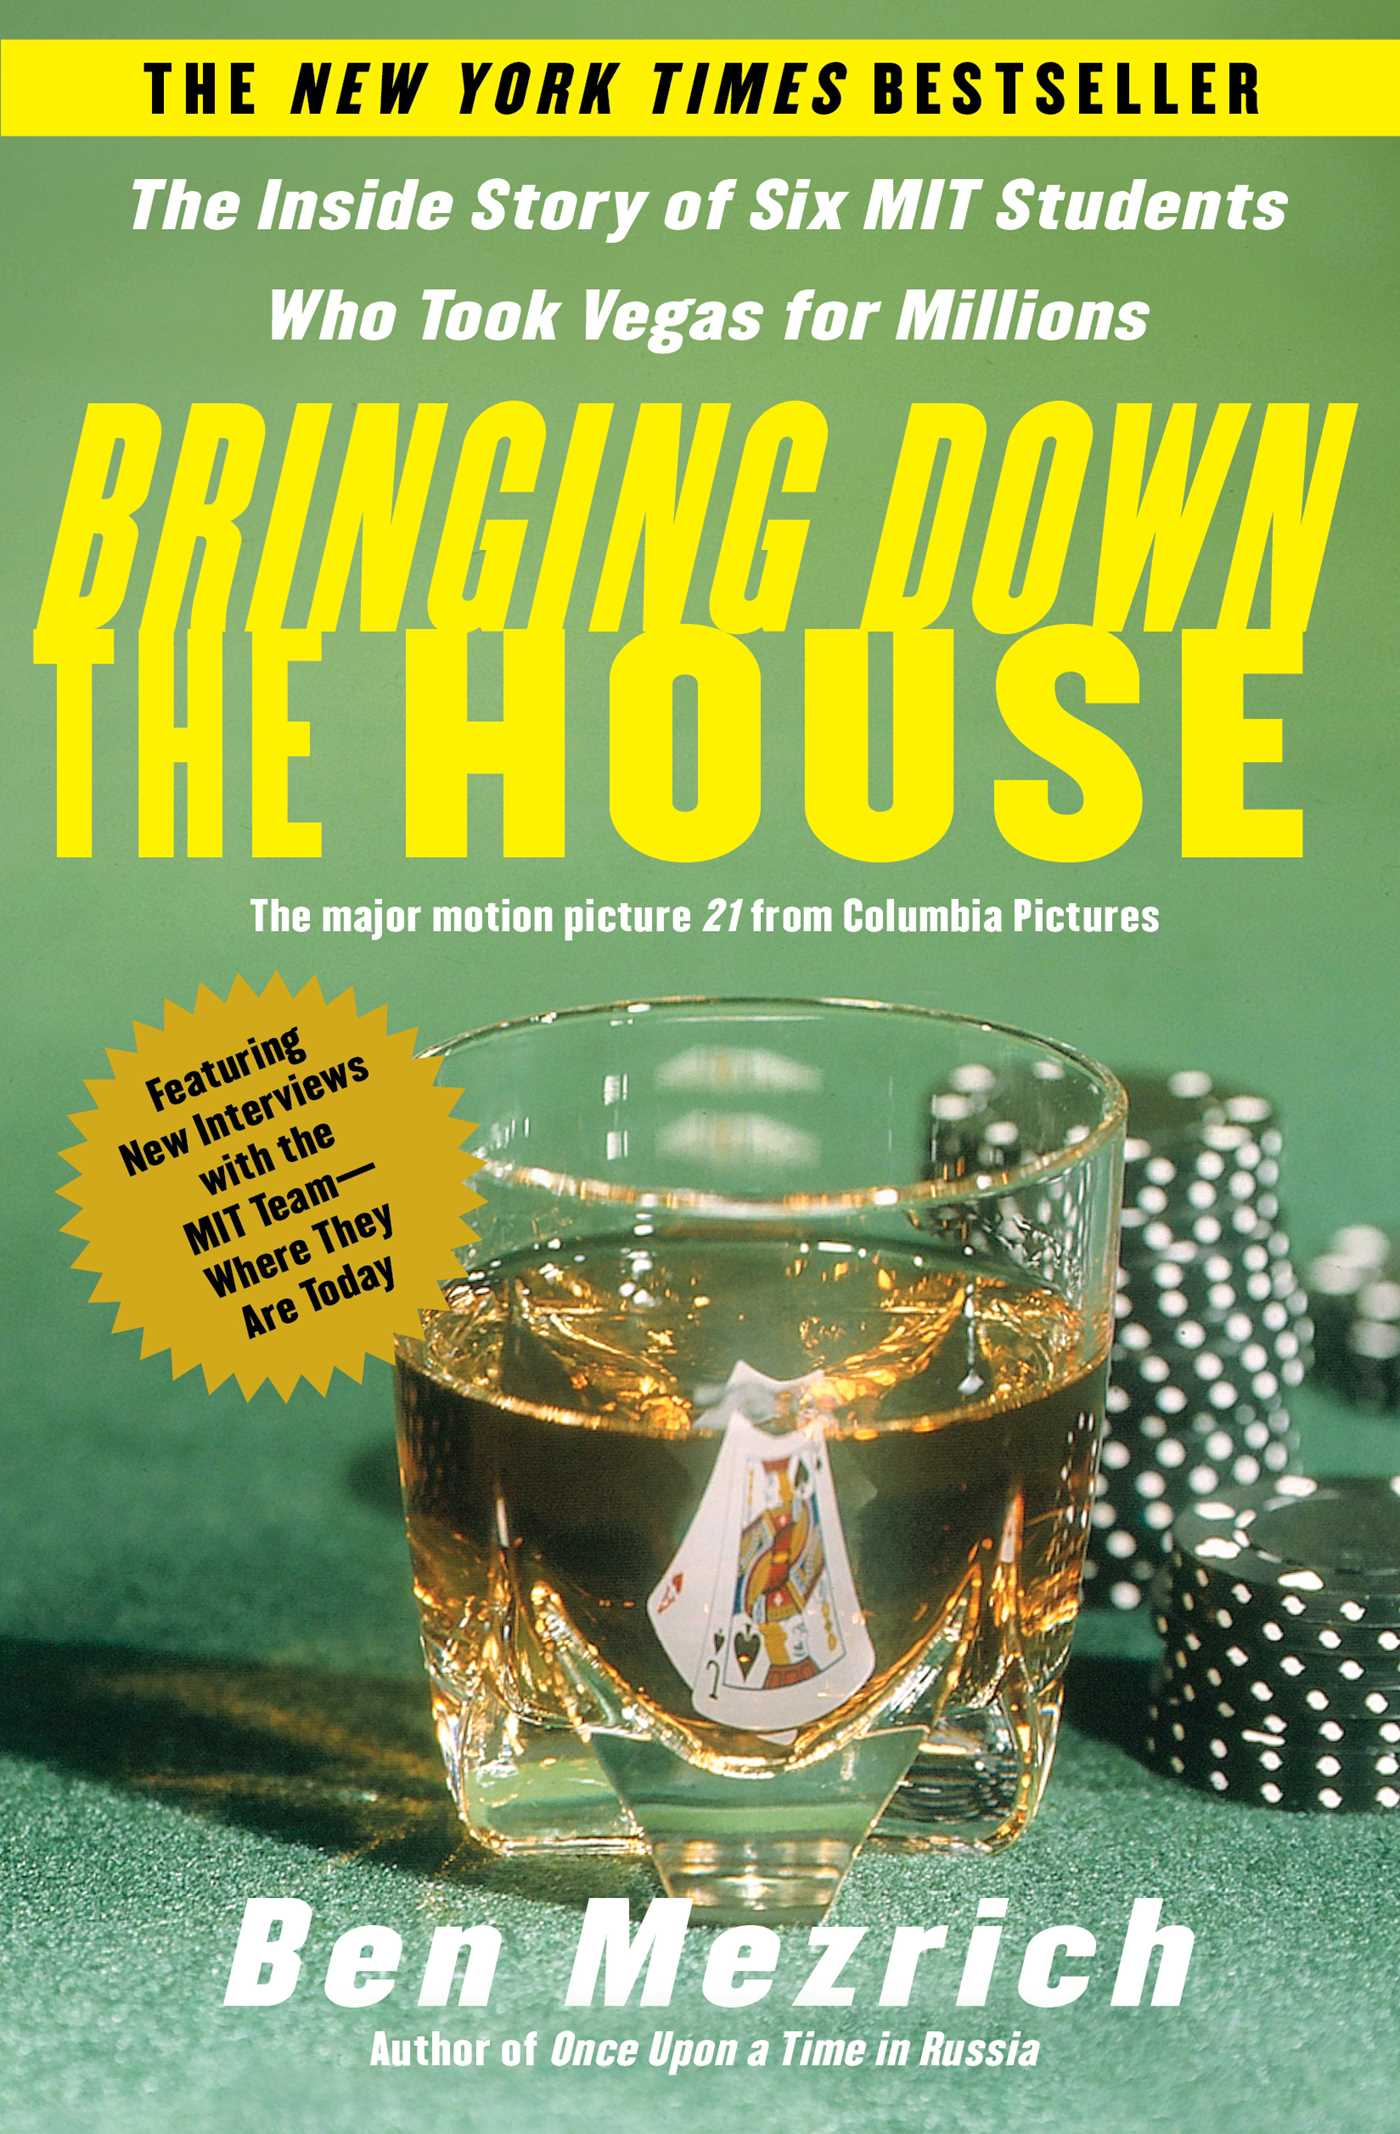 Bringing down the house 9780743249997 hr